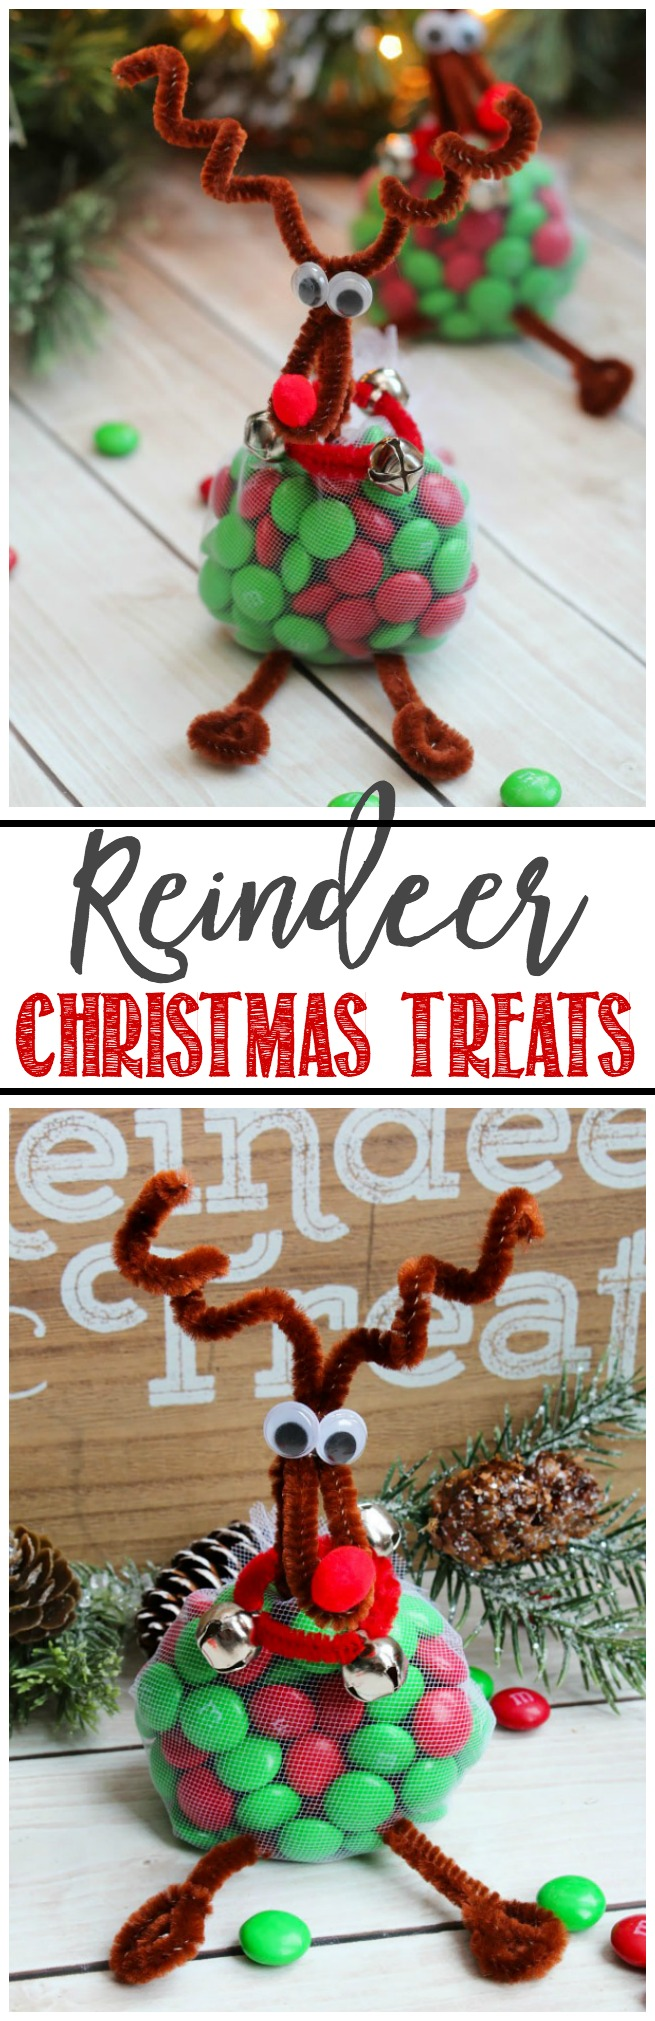 Reindeer treats. This easy Christmas craft is lots of fun for the kids and make cute little gifts or table toppers.